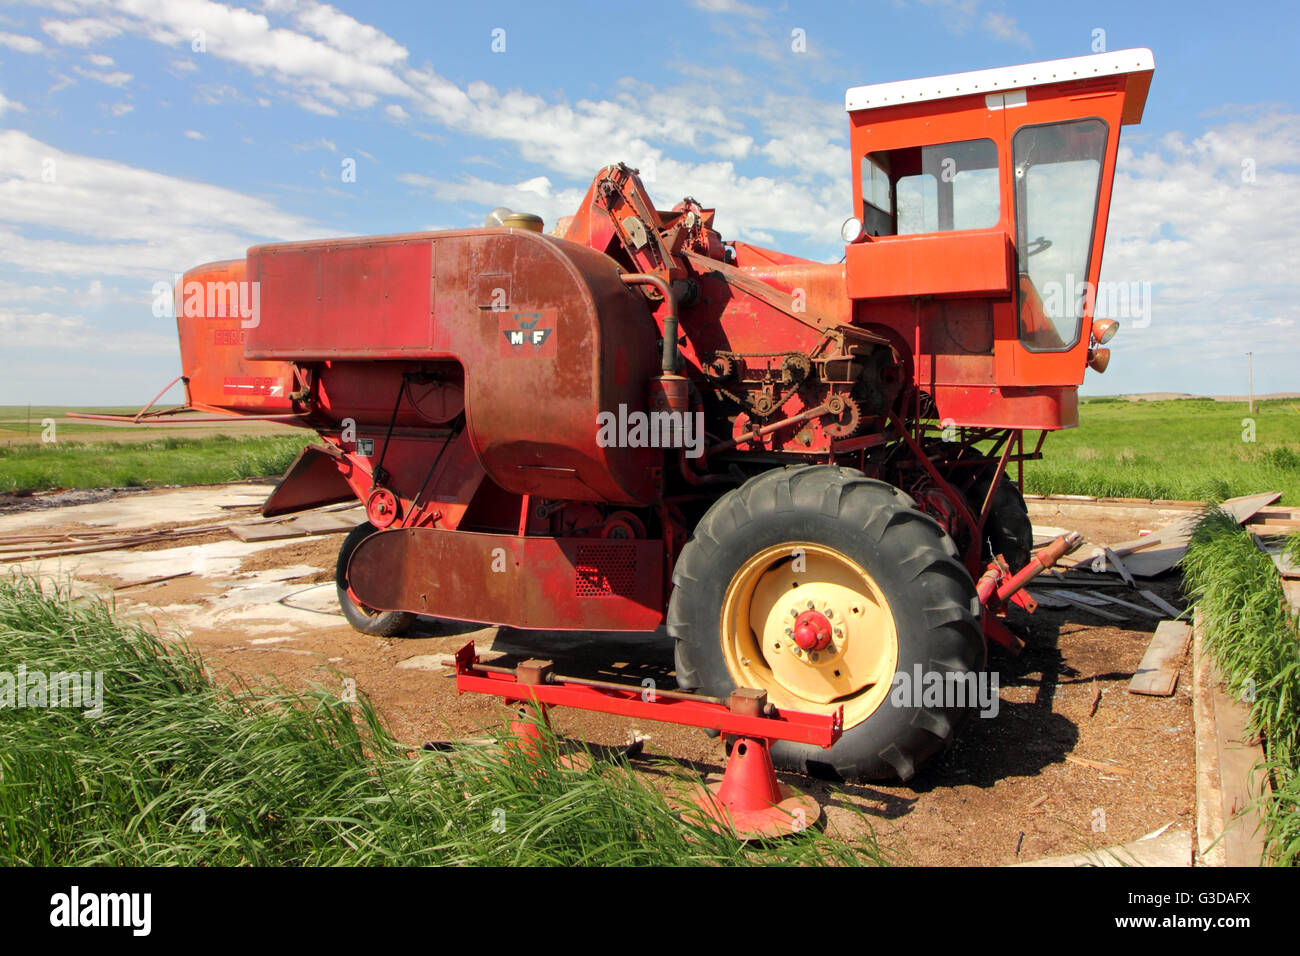 A Massey Ferguson Super 92 combine without a header. In Alberta, Canada. - Stock Image